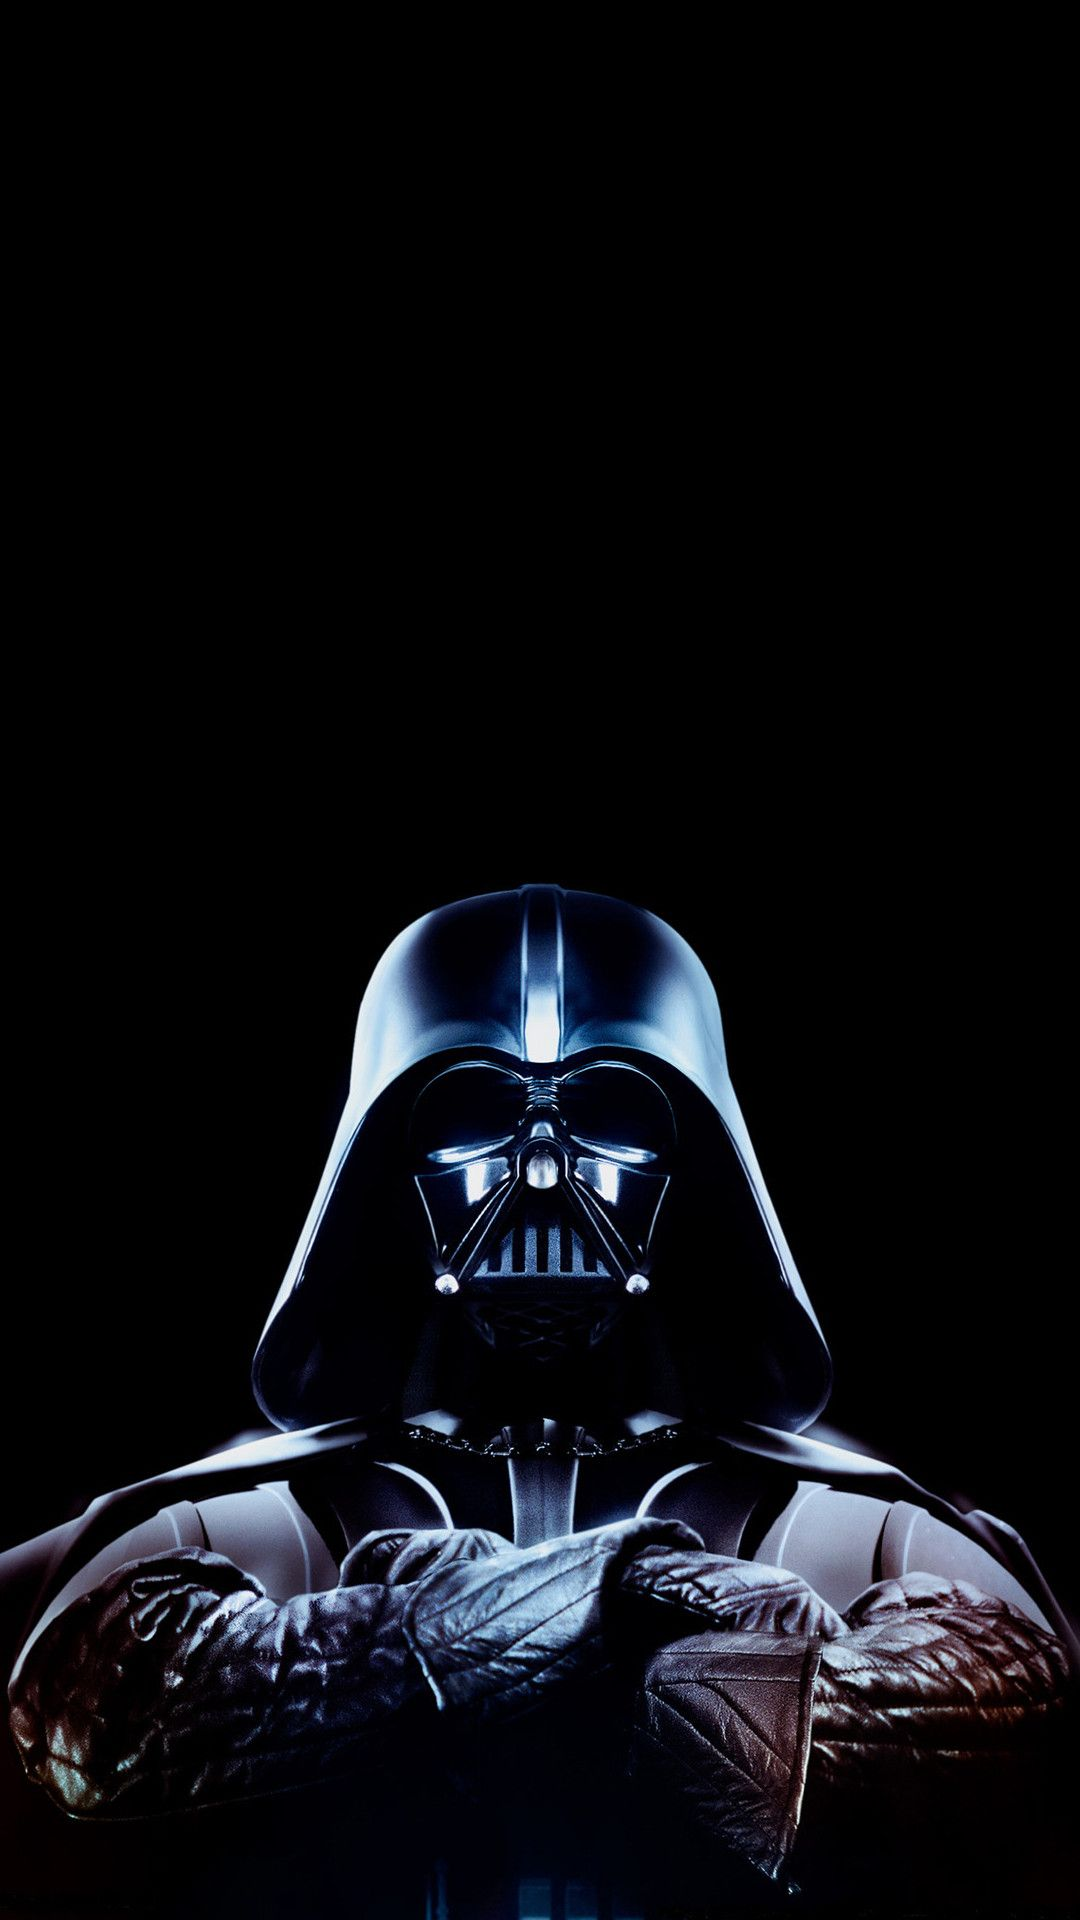 Wallpapers, Phone wallpapers Star wars wallpaper, Vader